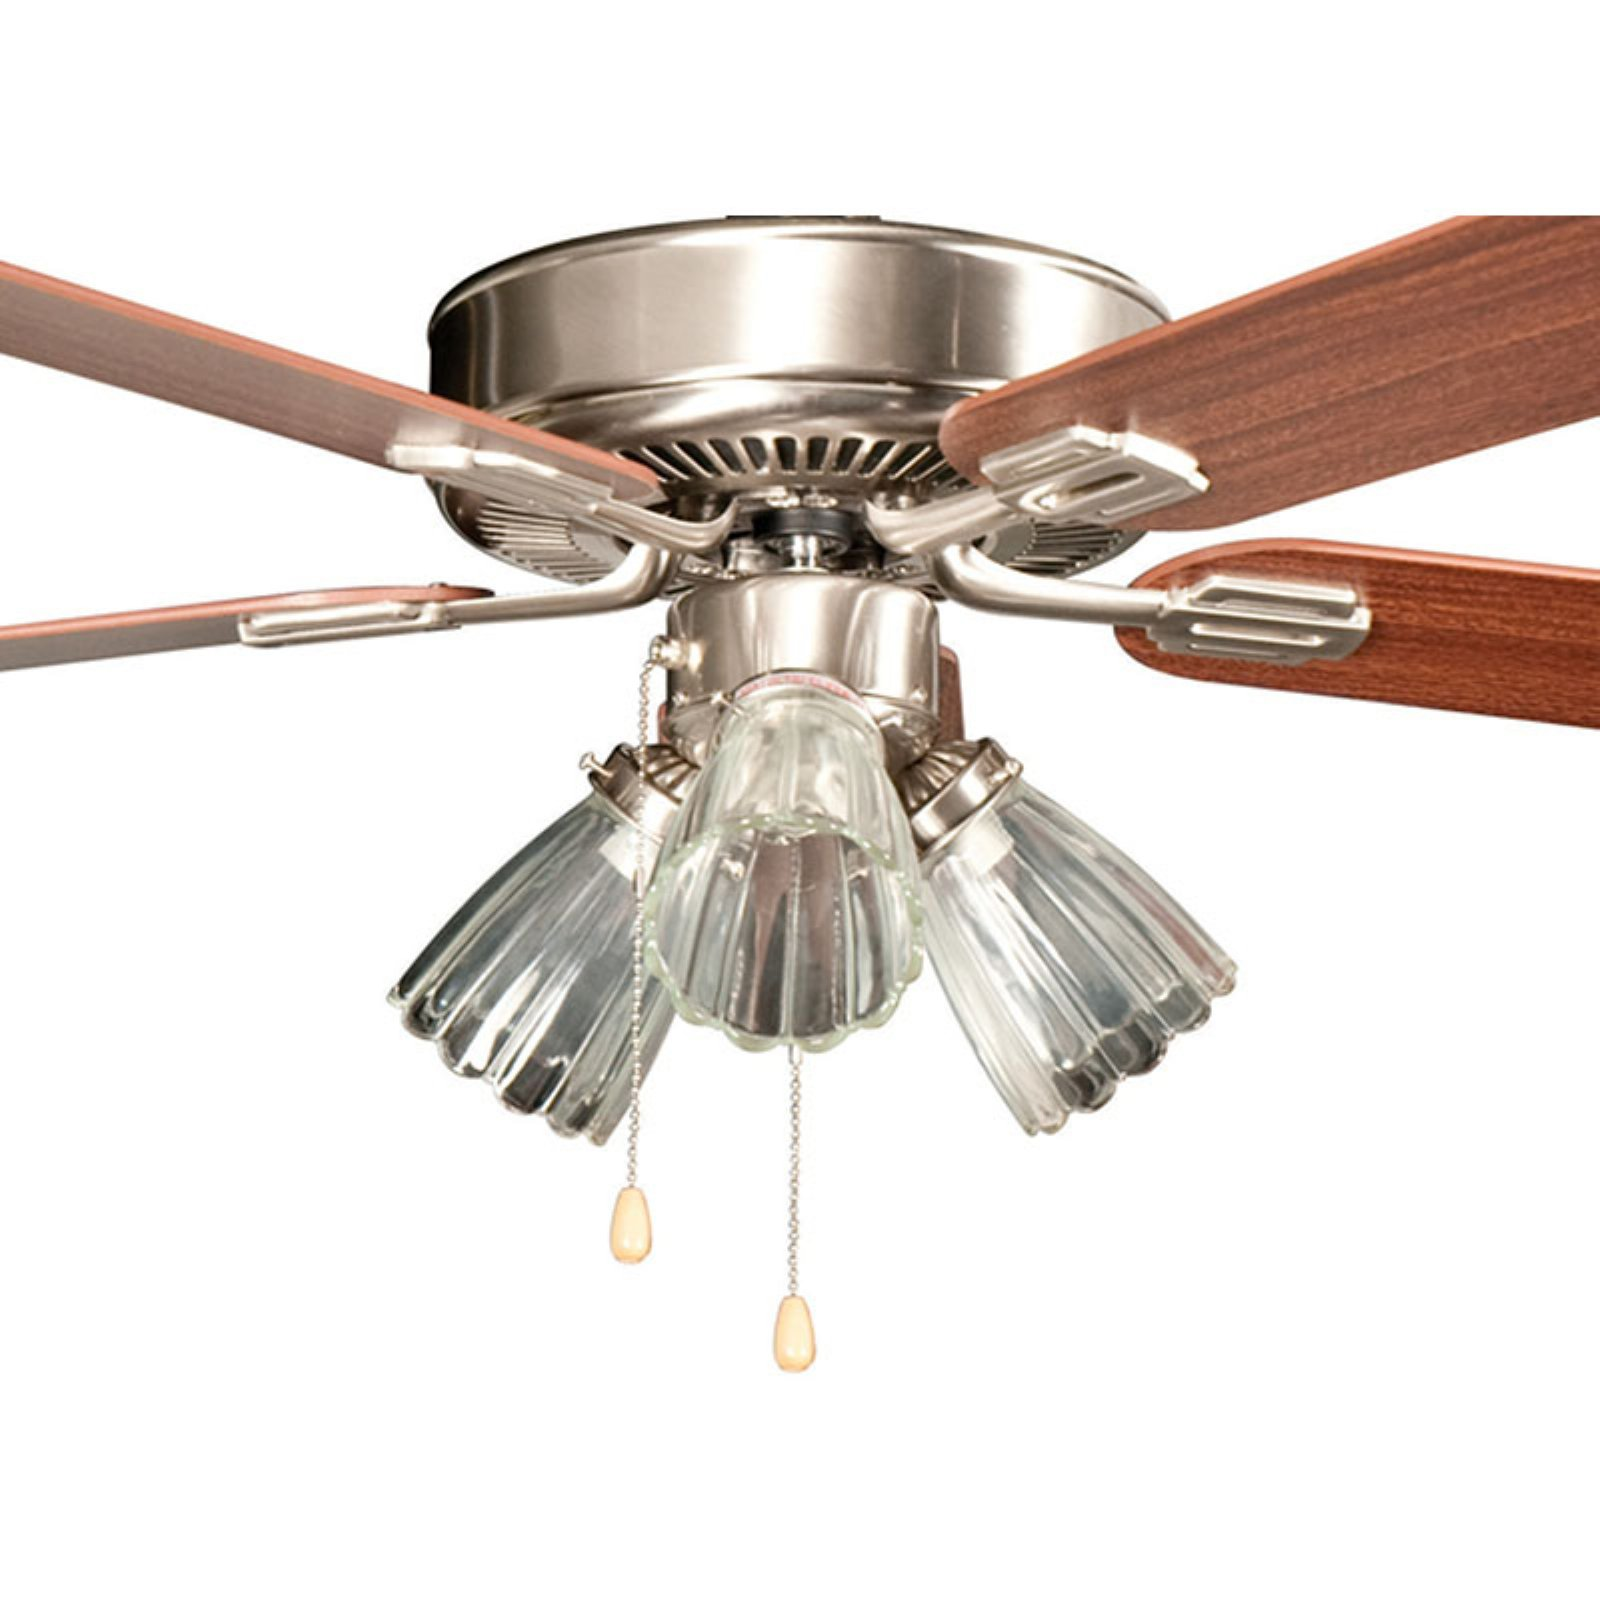 "Concord 52SM5E San Marcos 52"" 5 Blade Indoor Ceiling Fan with Light Kit, Downrod"